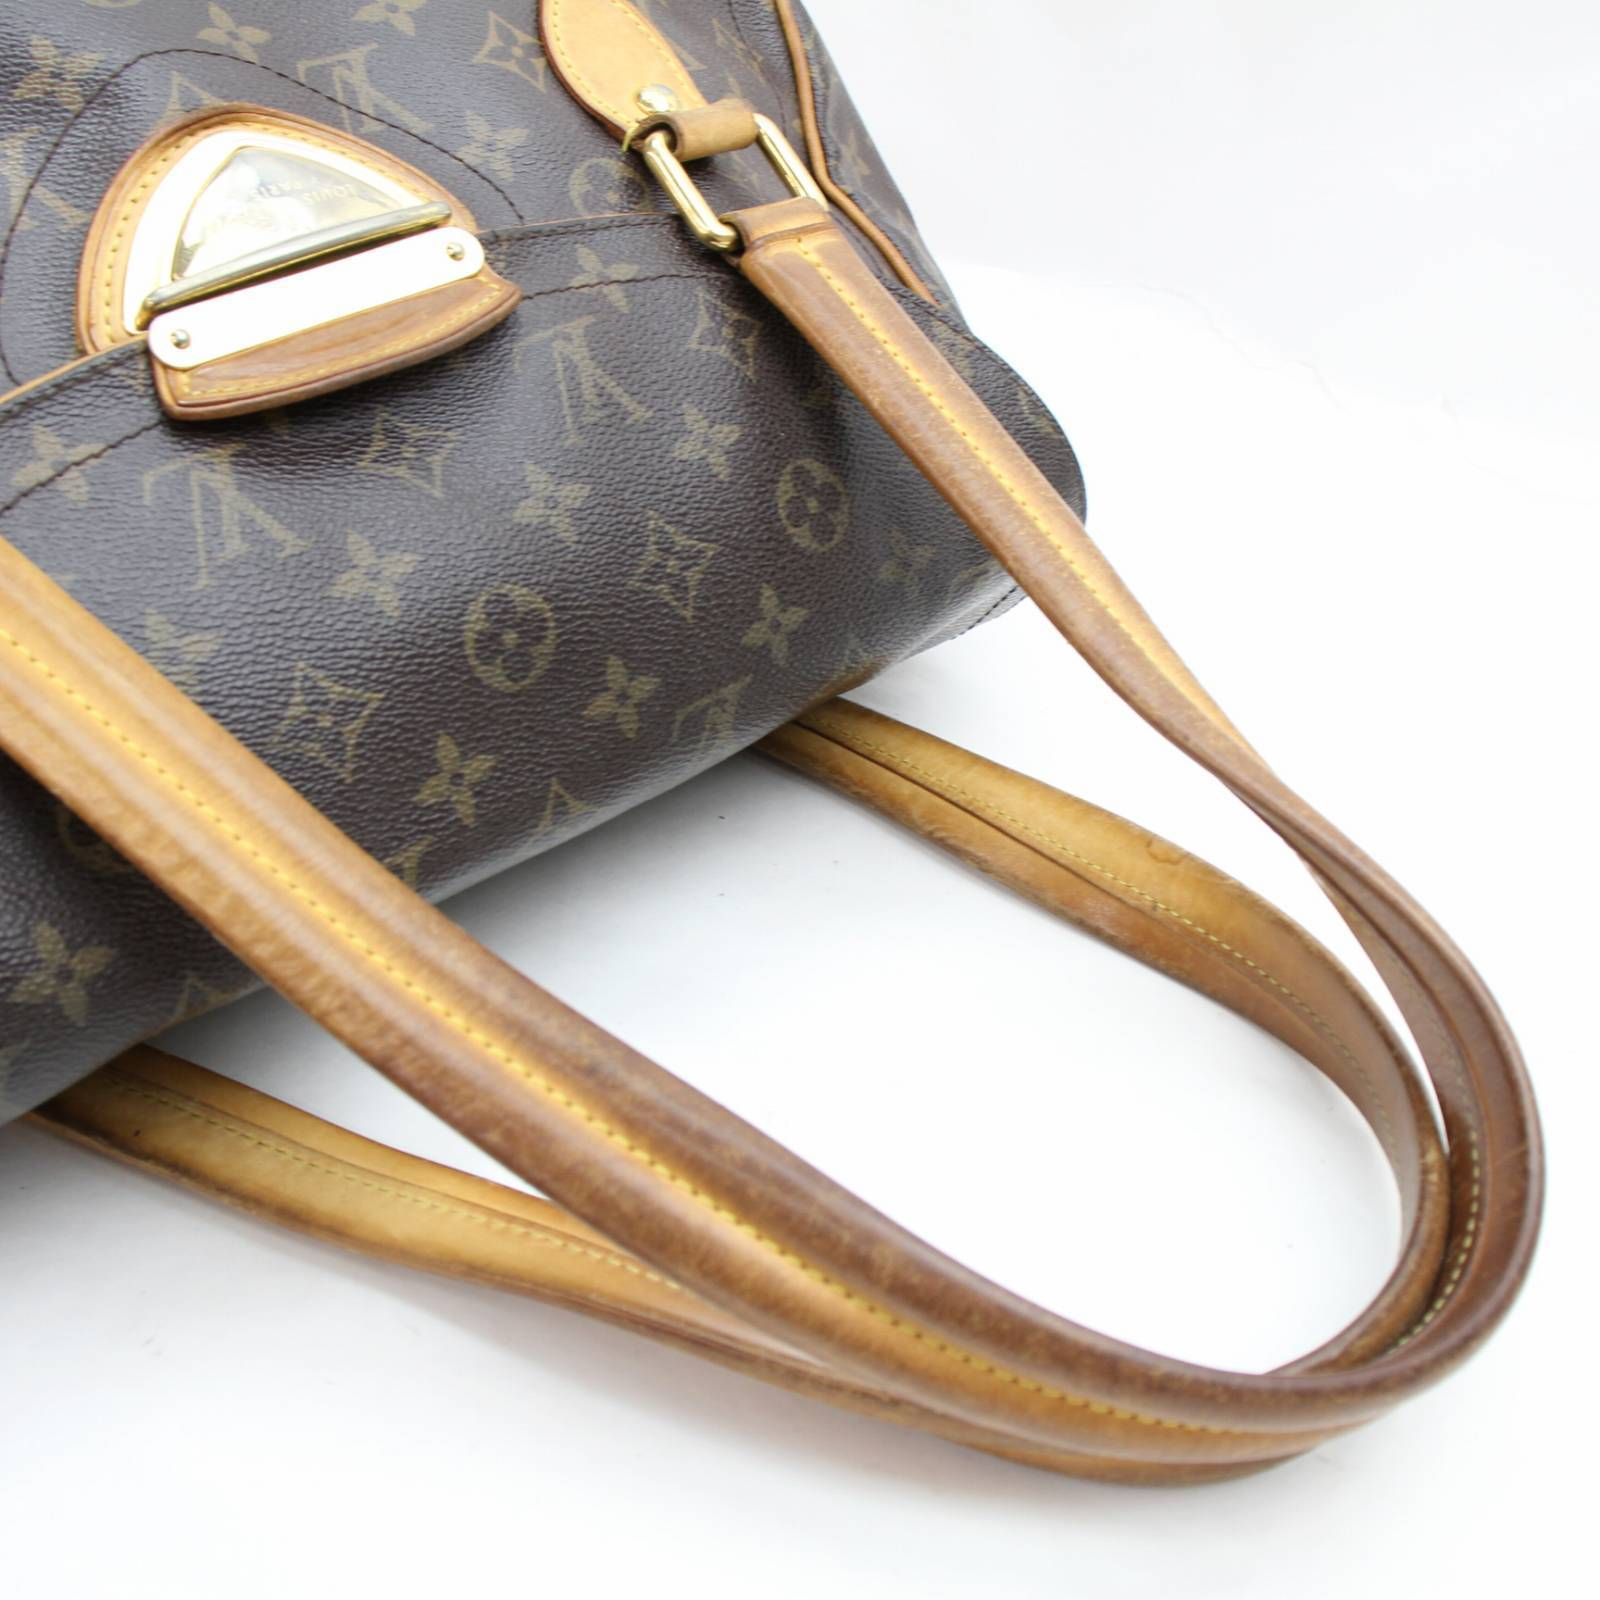 Louis Vuitton Beverly GM Brown Monogram M40120 Hand Bag 11050 - eModaOutlet